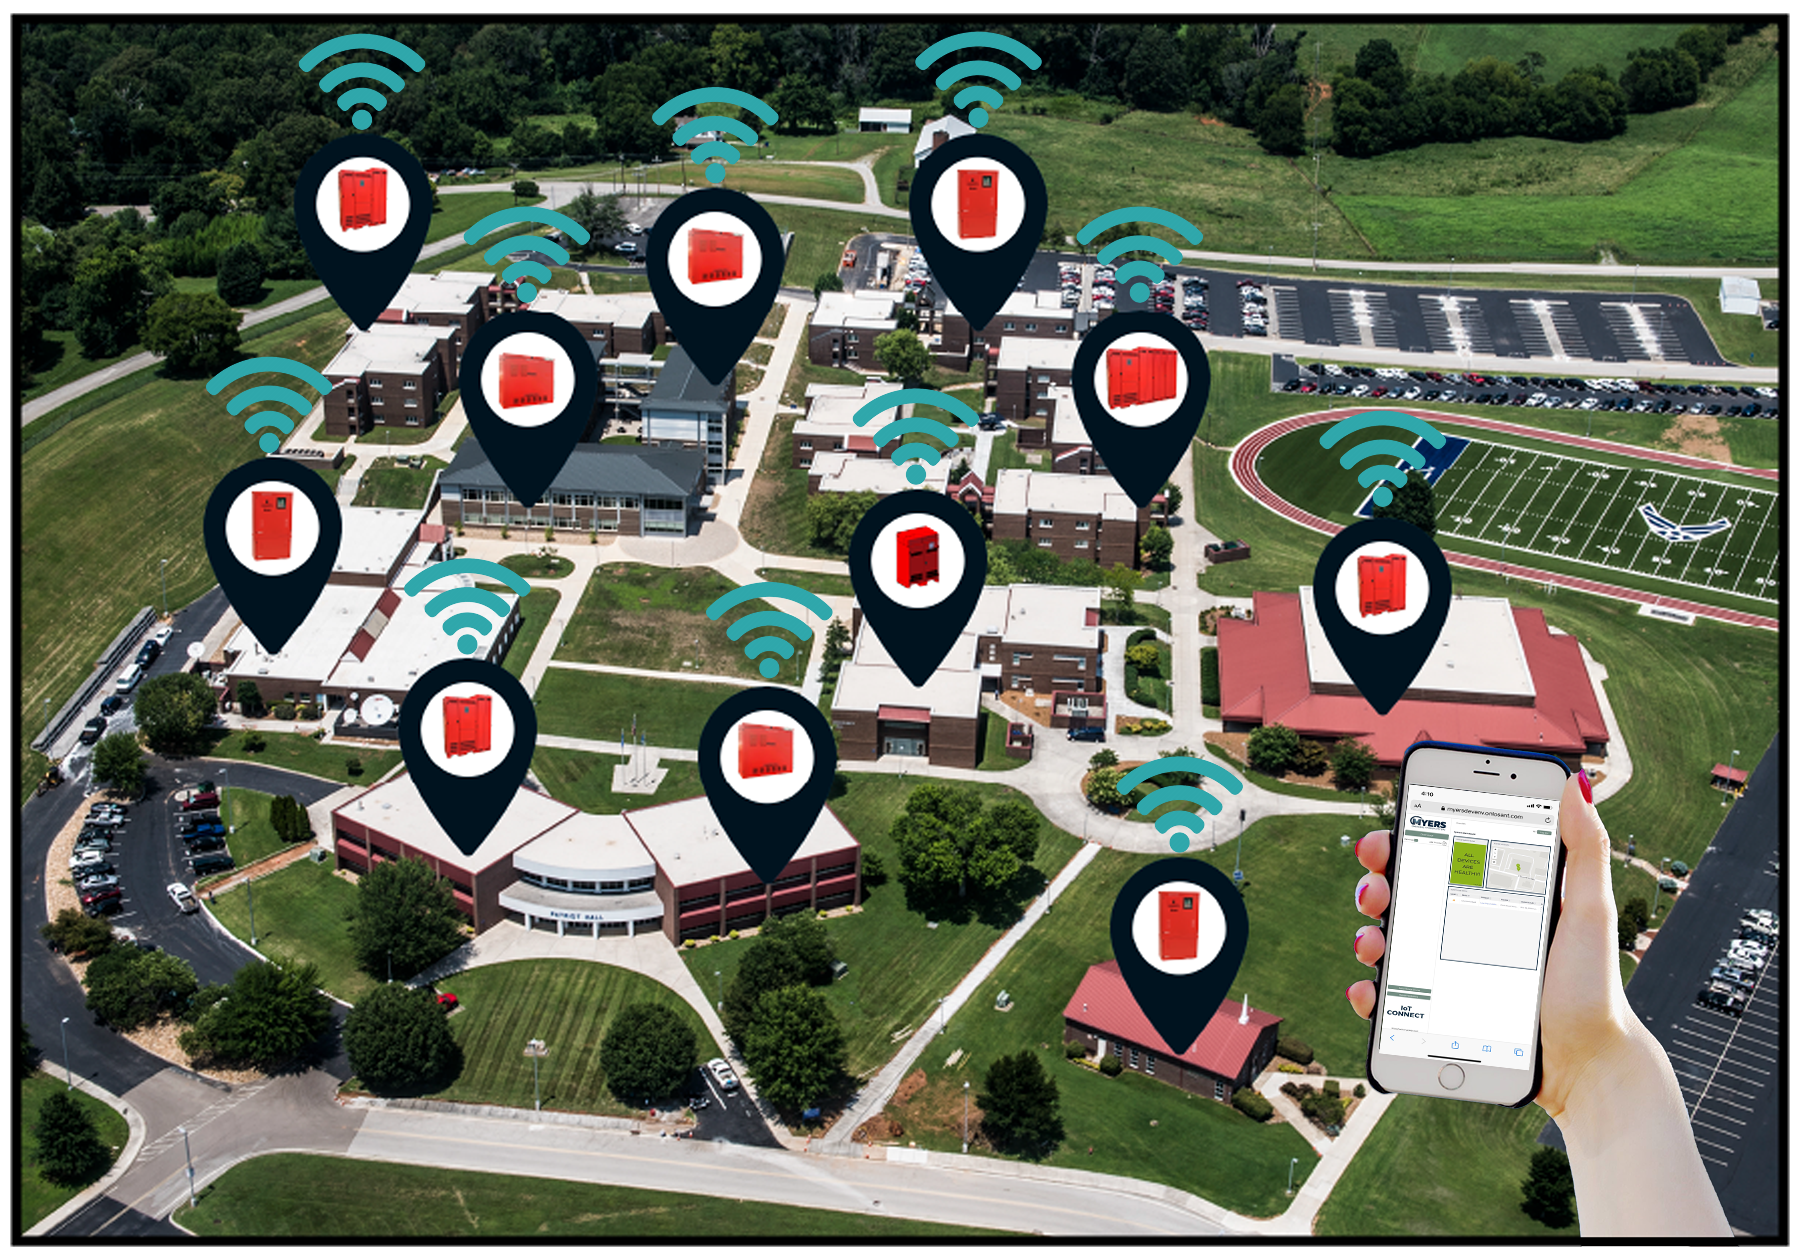 Campus-map-image